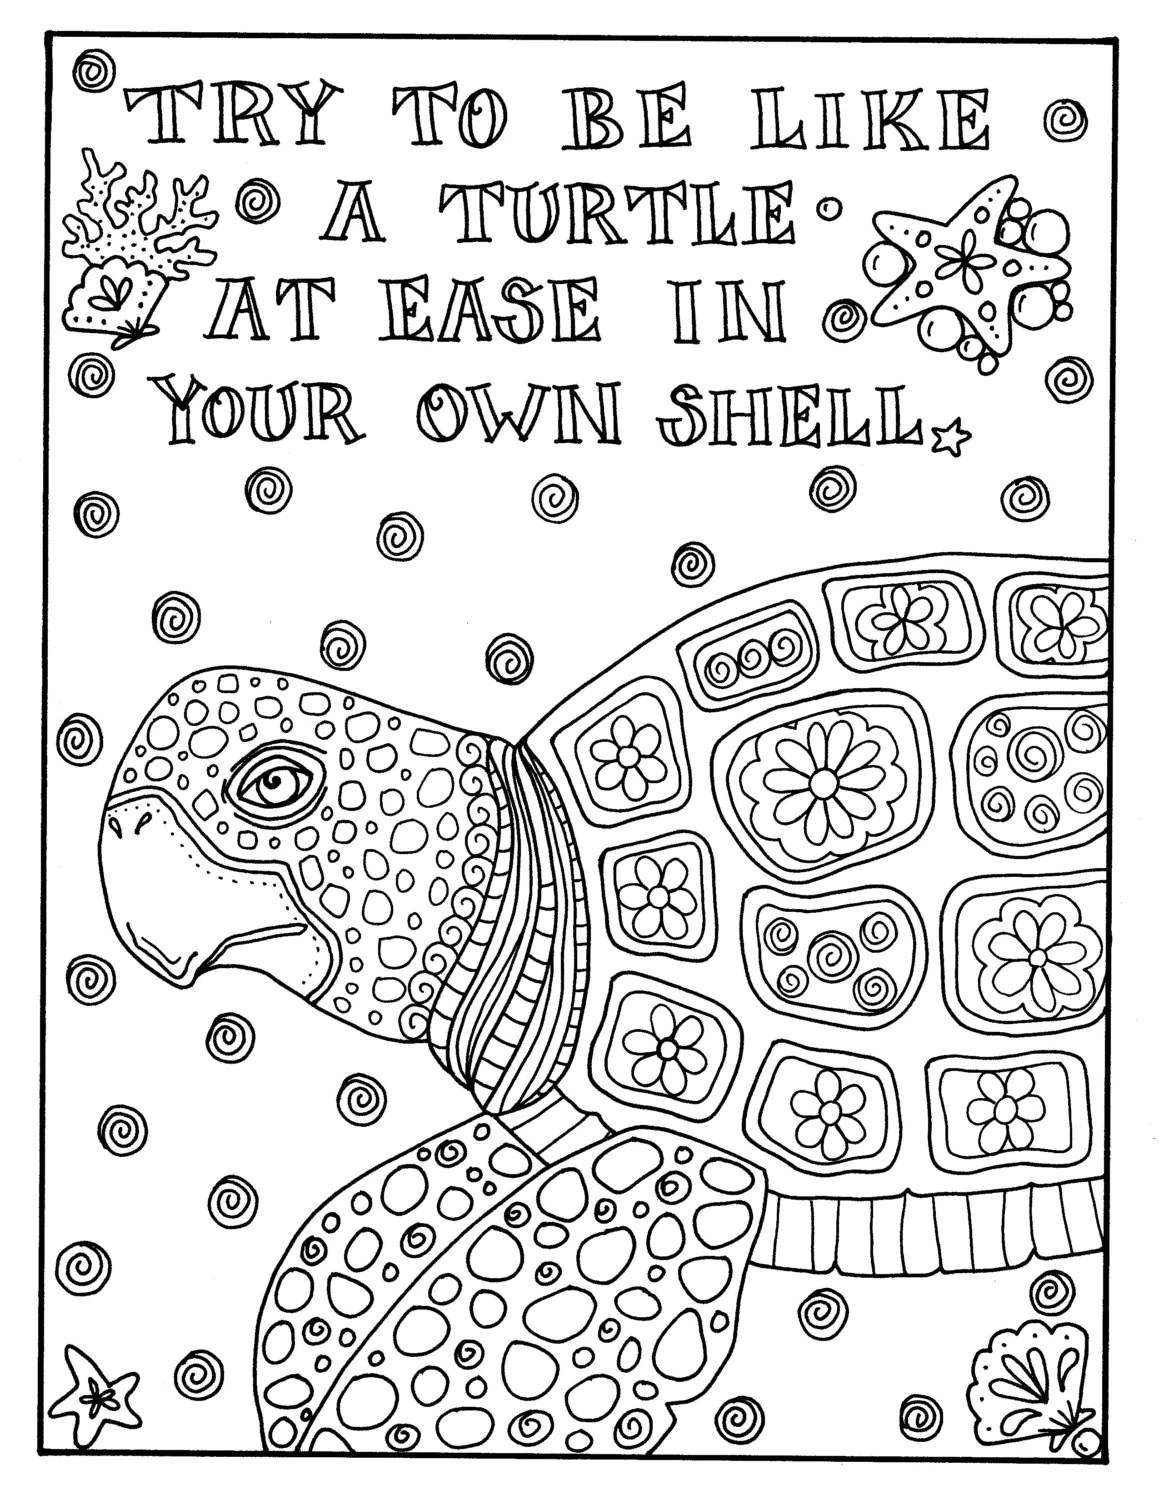 Instant download coloring page Adult coloring pages